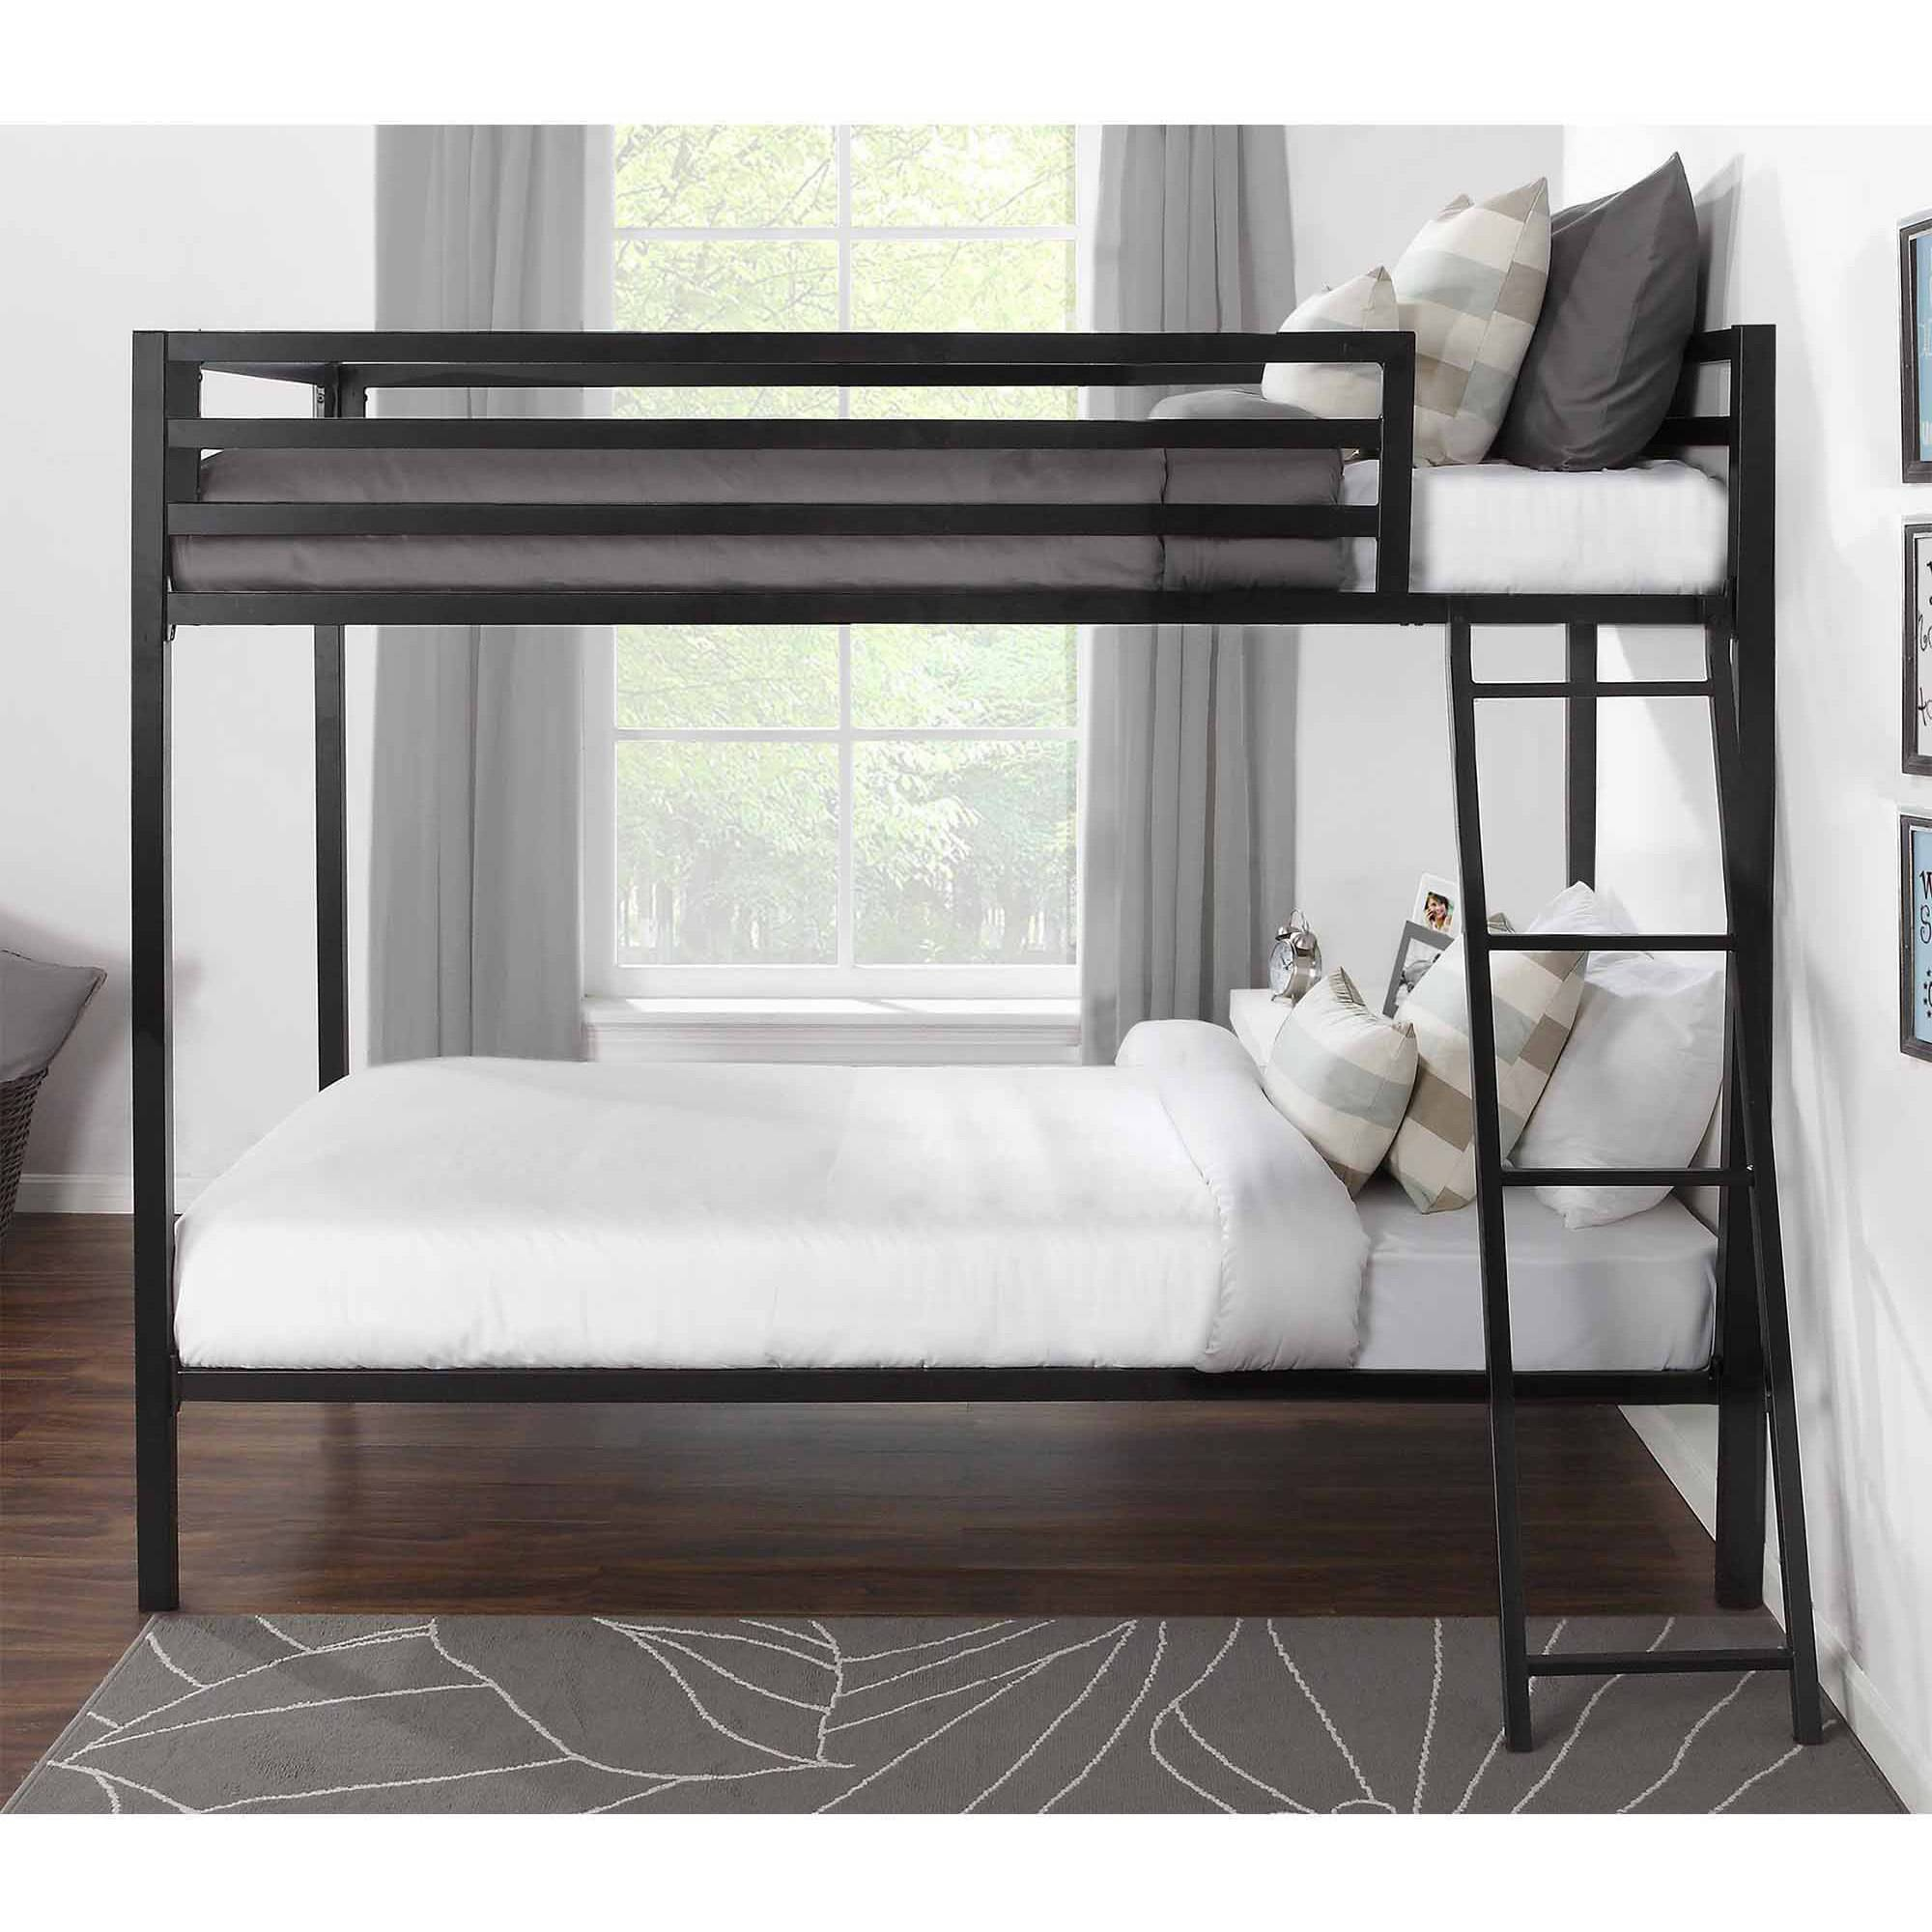 3 Twin Beds In The Space Of 1 Bunk Beds Twin Over Twin Kids Furniture Bedroom Ladder